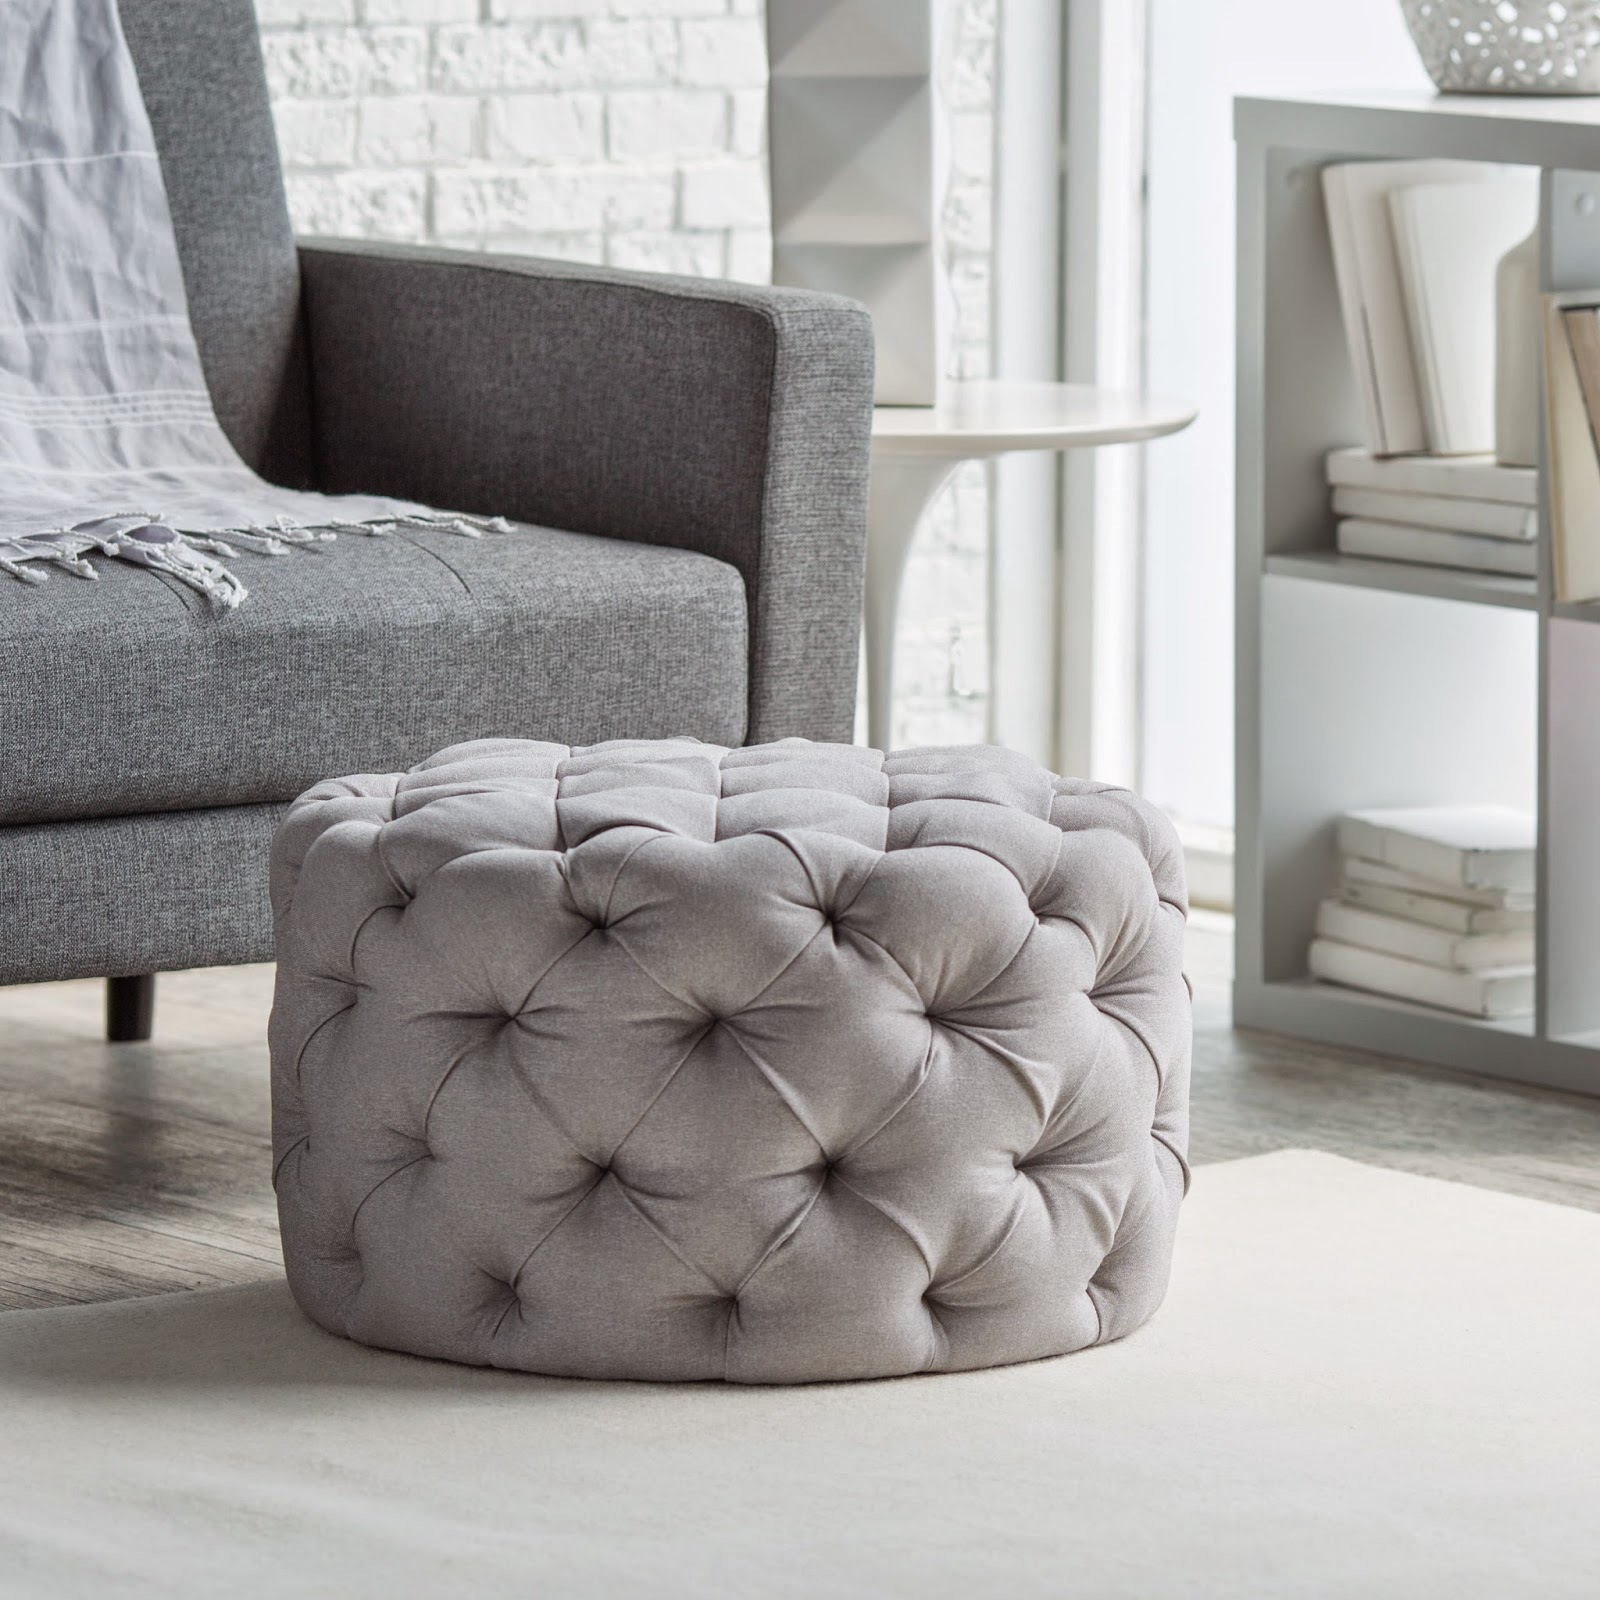 Image Result For Coffee Table You Can Put Your Feet On